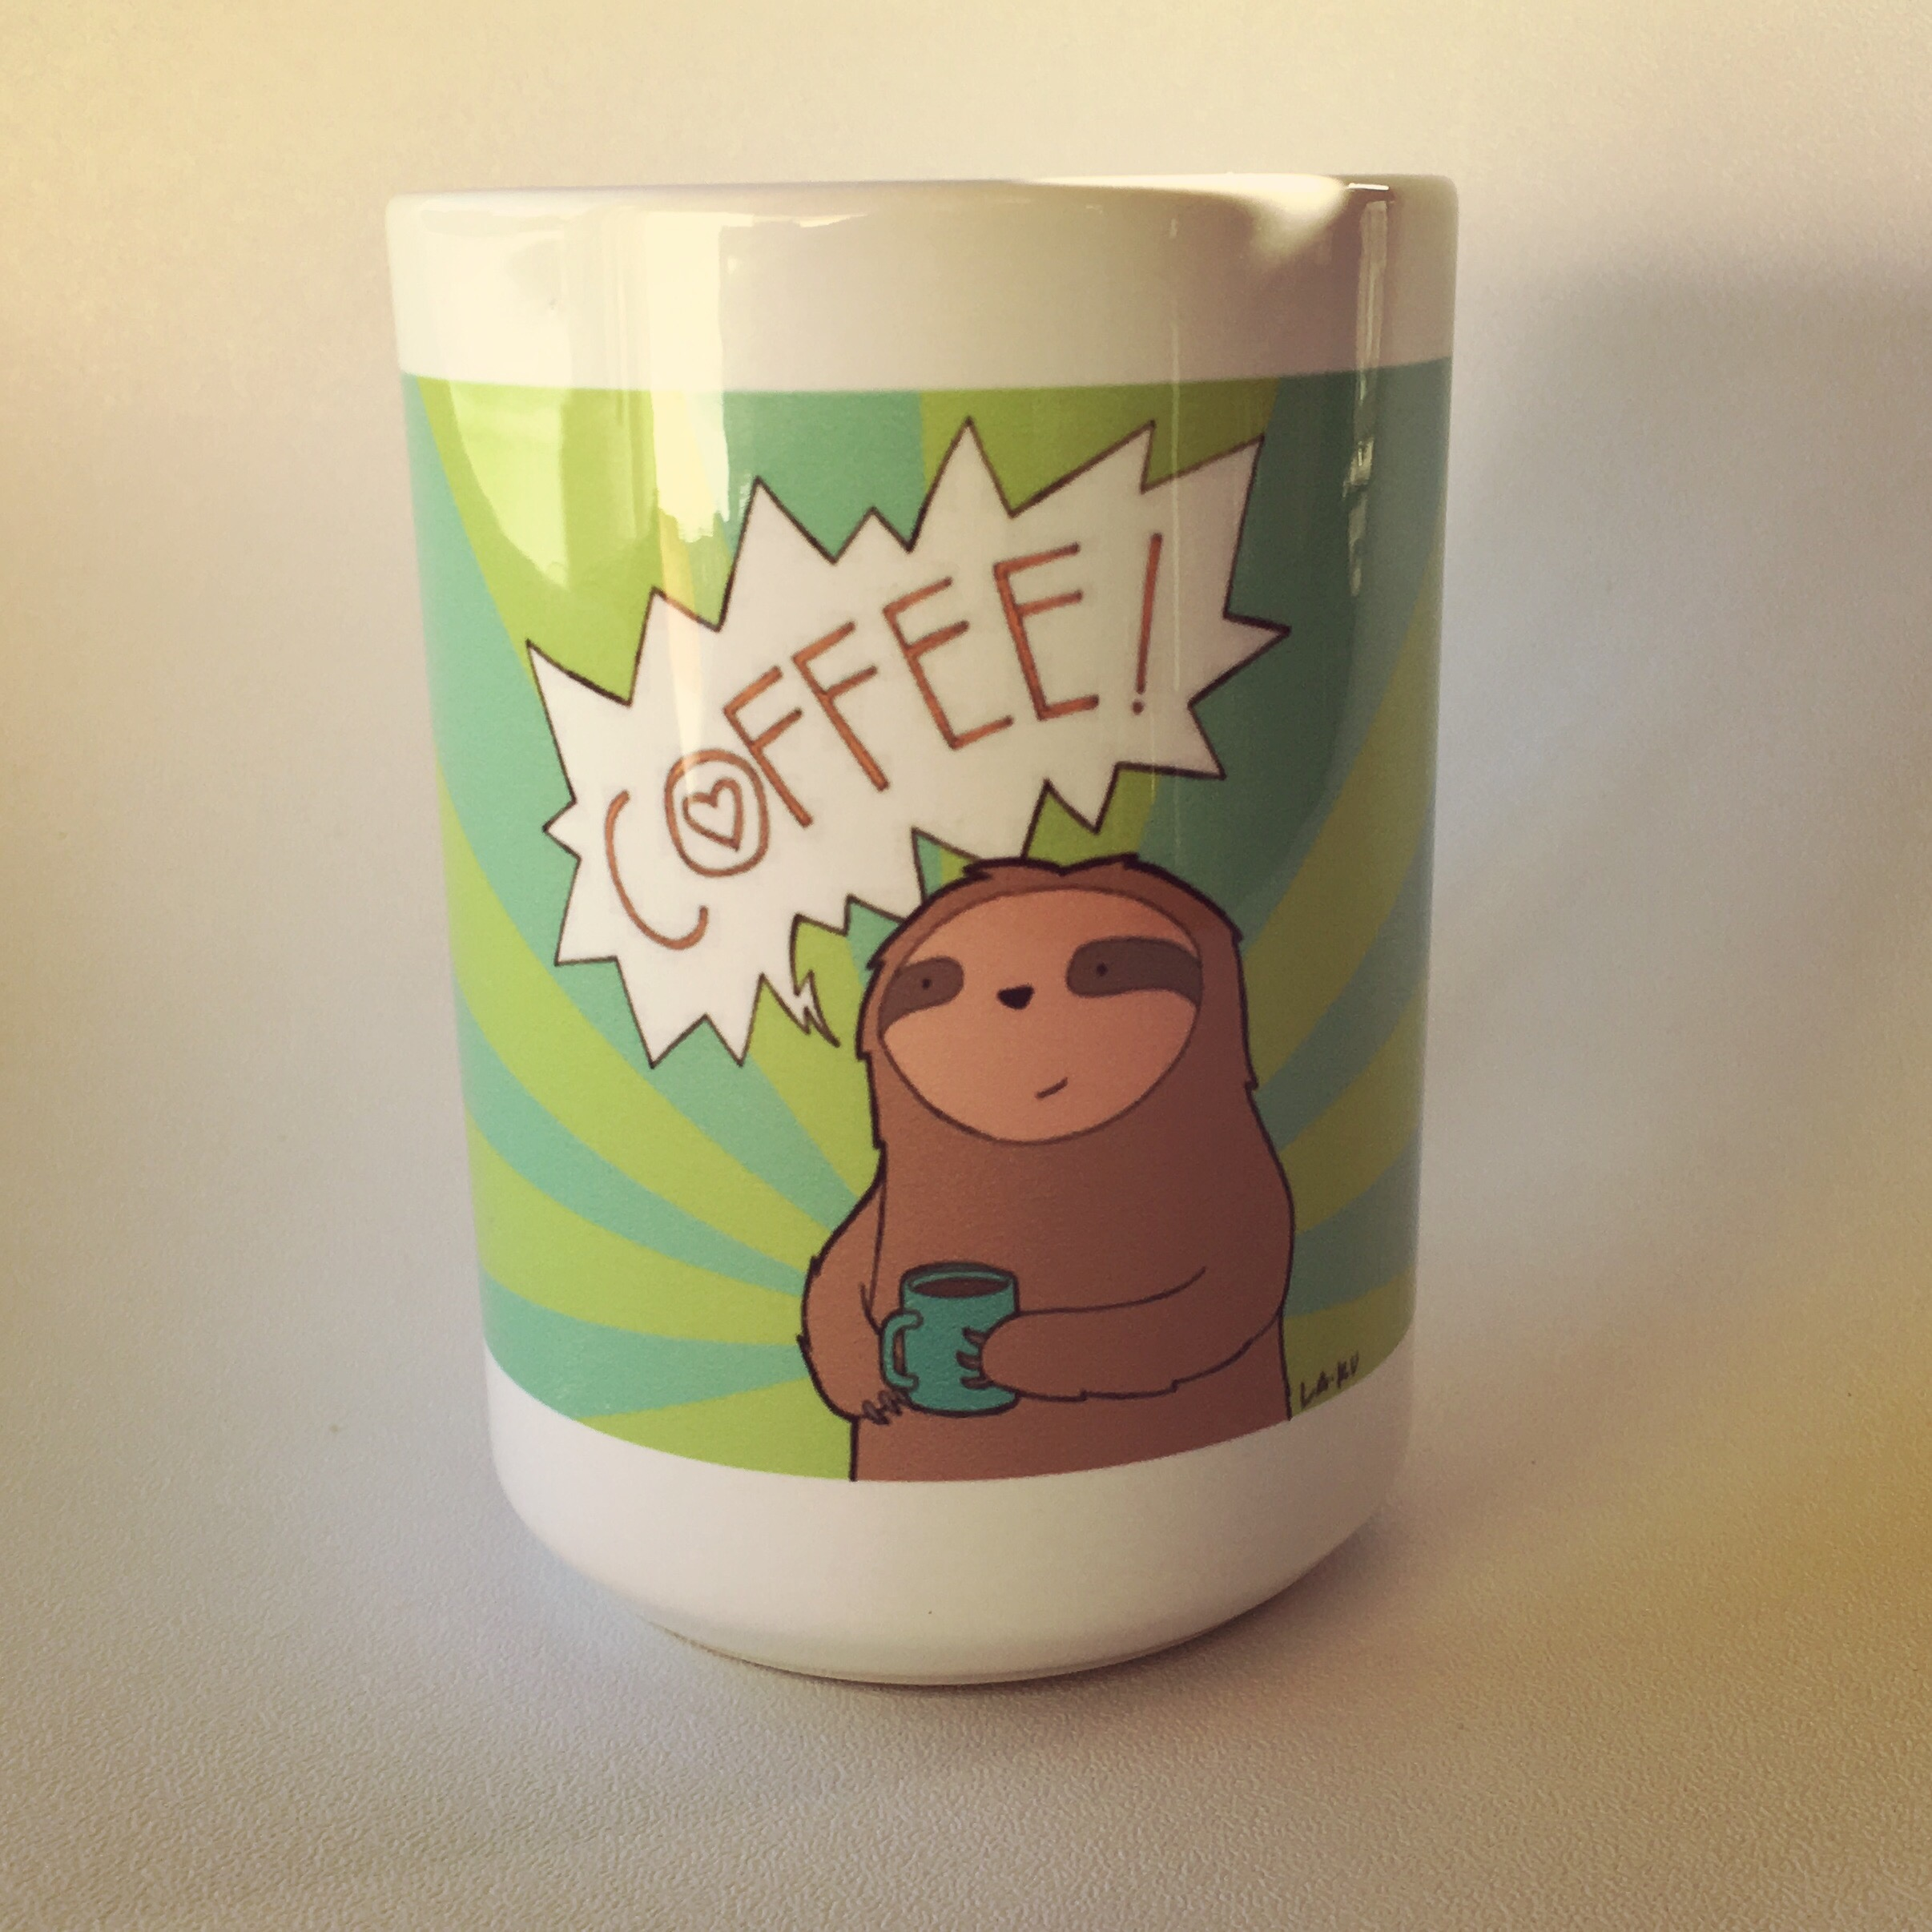 Sloth mug from Ugly Baby and La Ru in Seattle